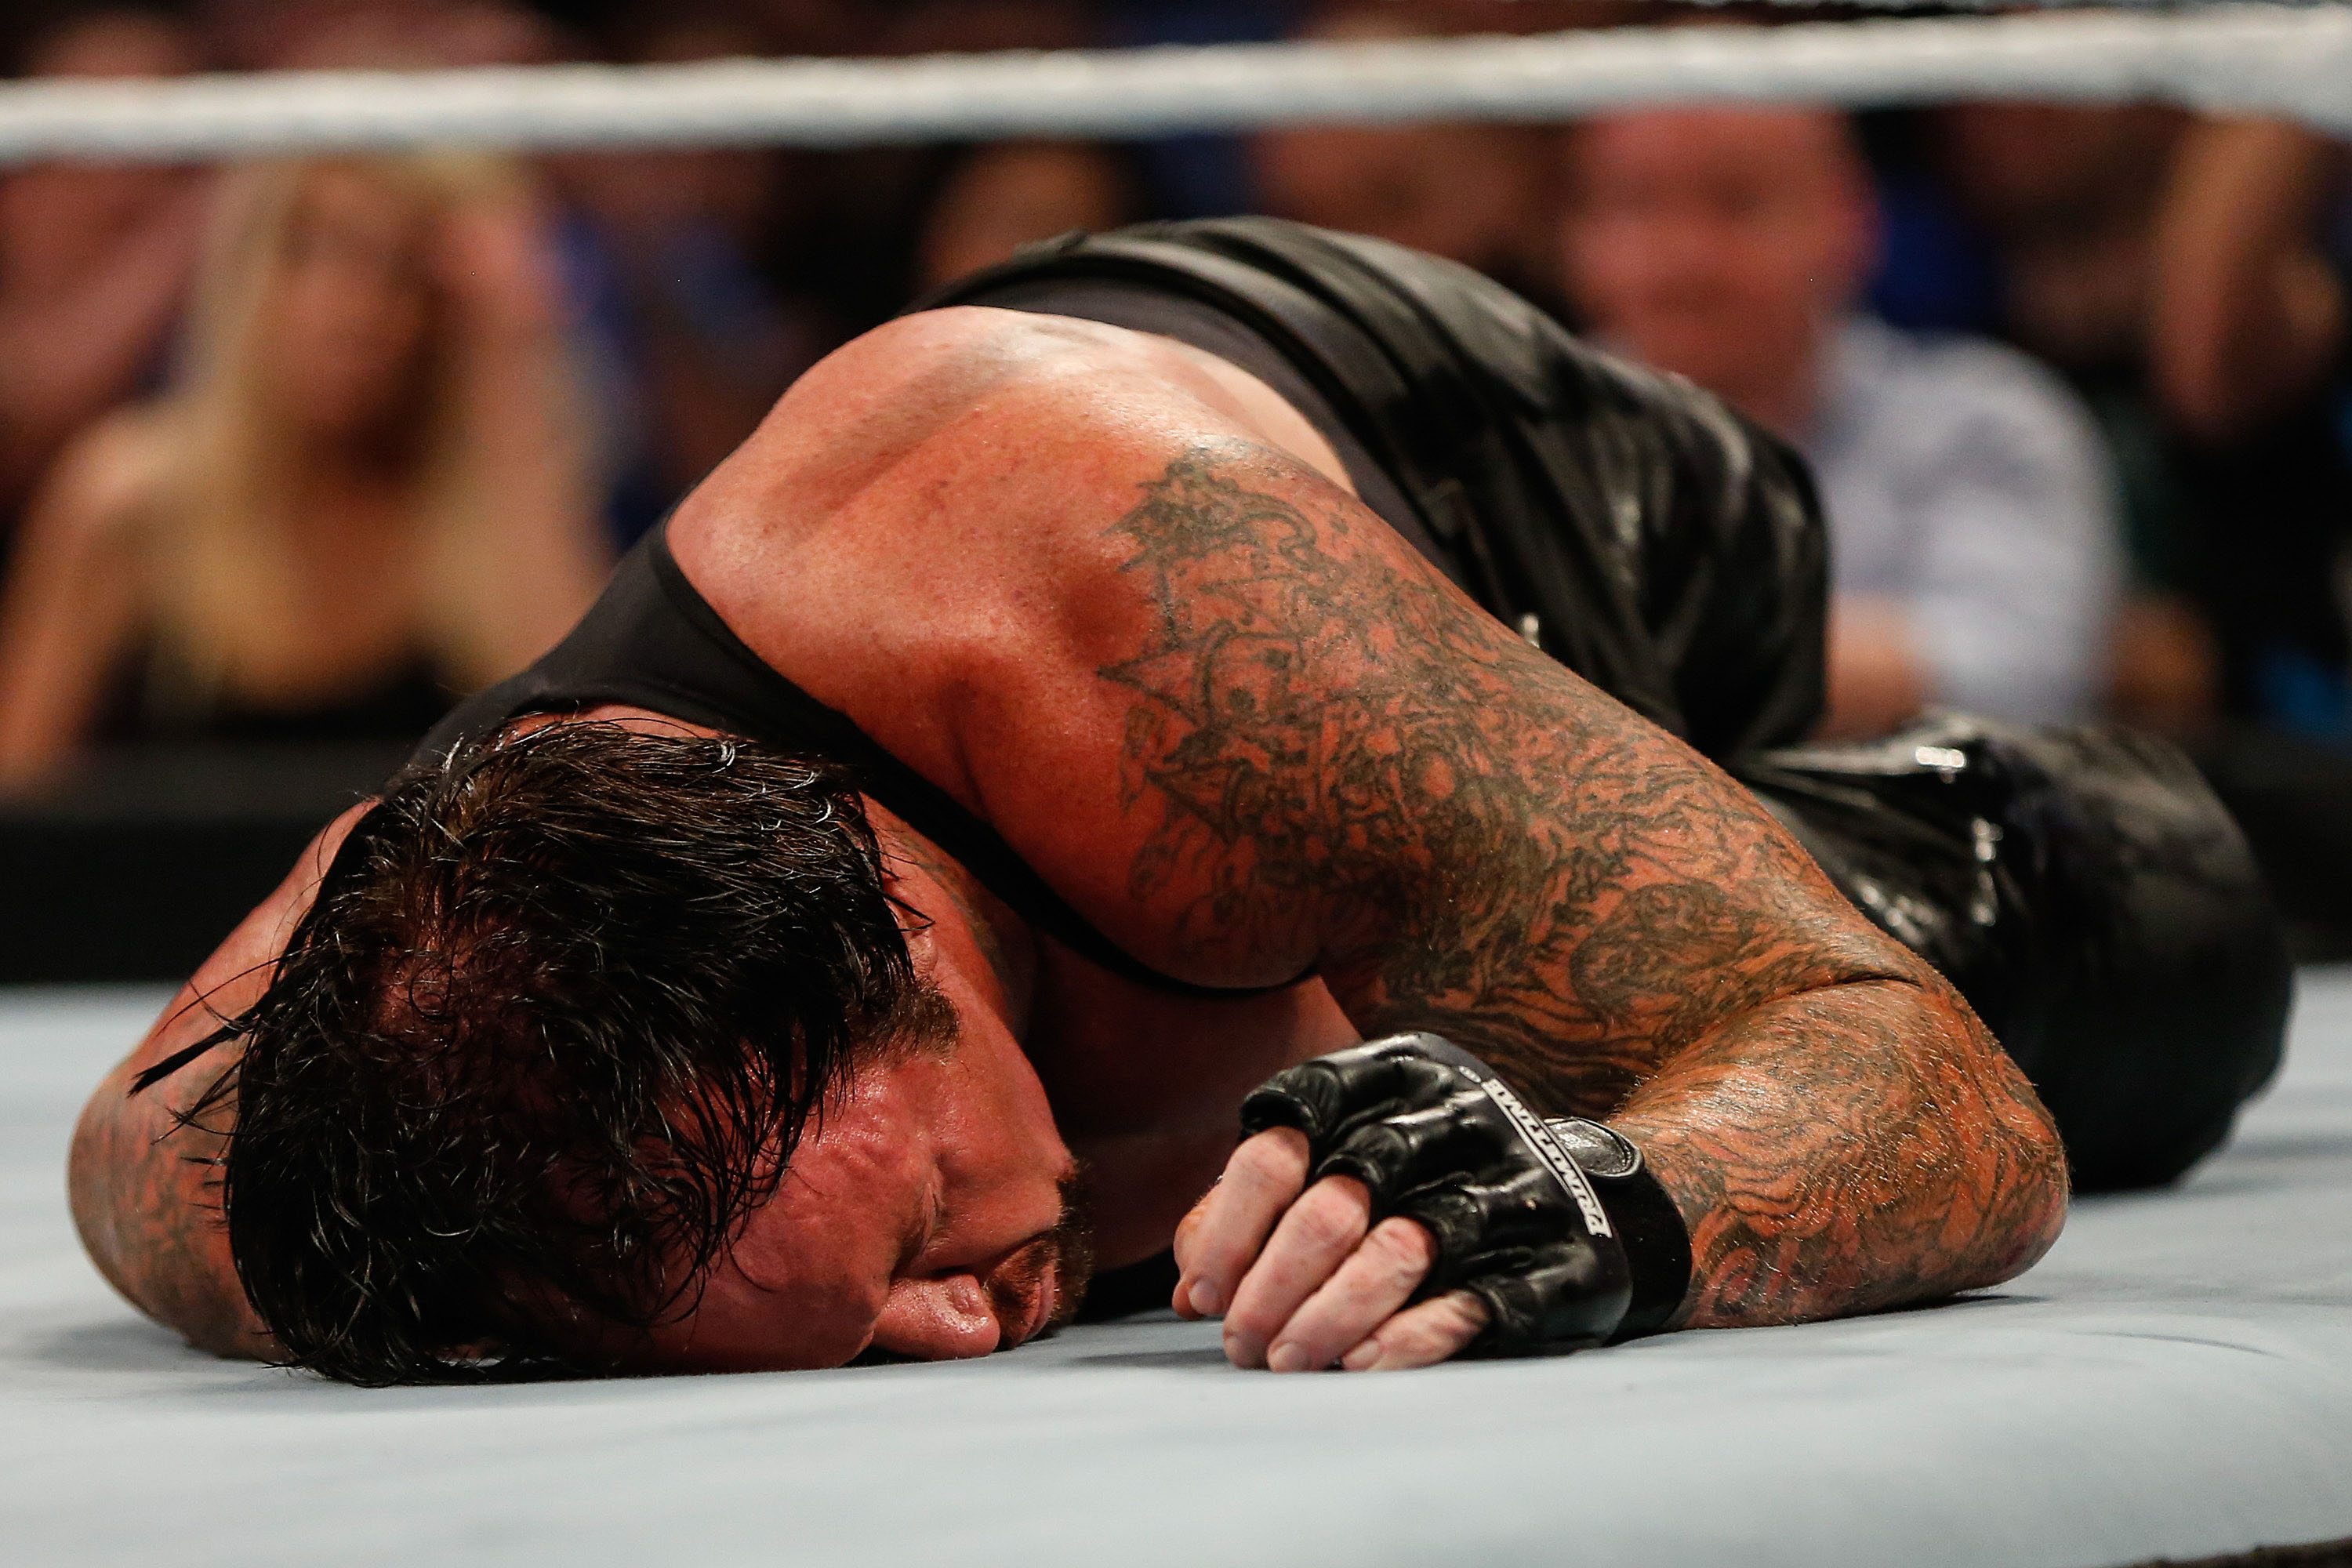 The Undertaker gets beaten to the ground at the WWE SummerSlam 2015 at Barclays Center of Brooklyn on August 23, 2015 in New York City. (Photo by JP Yim/Getty Images)